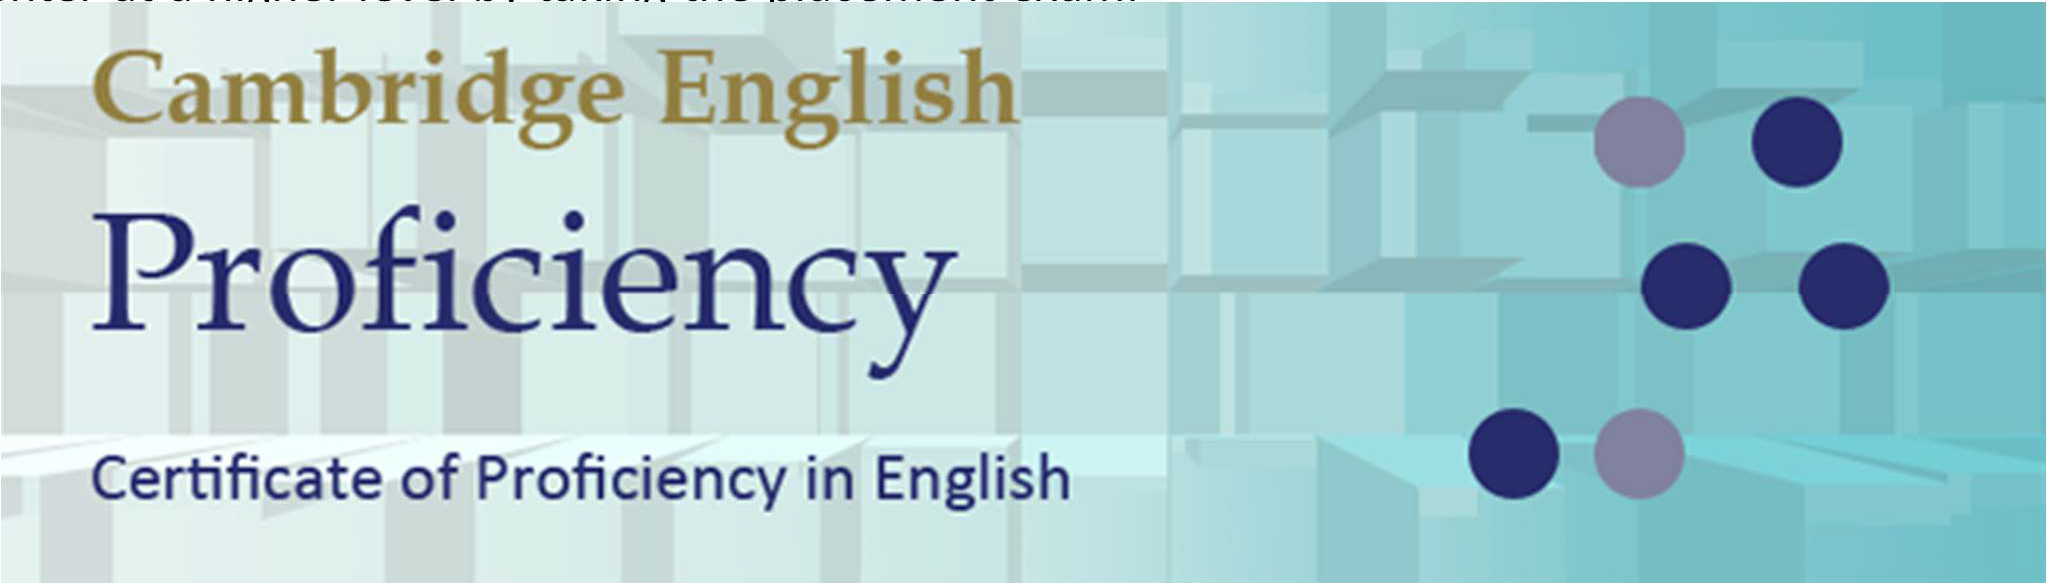 english proficiency An applicant whose native language is not english must provide proof of english proficiency your application will not be processed without valid proof of english proficiency.